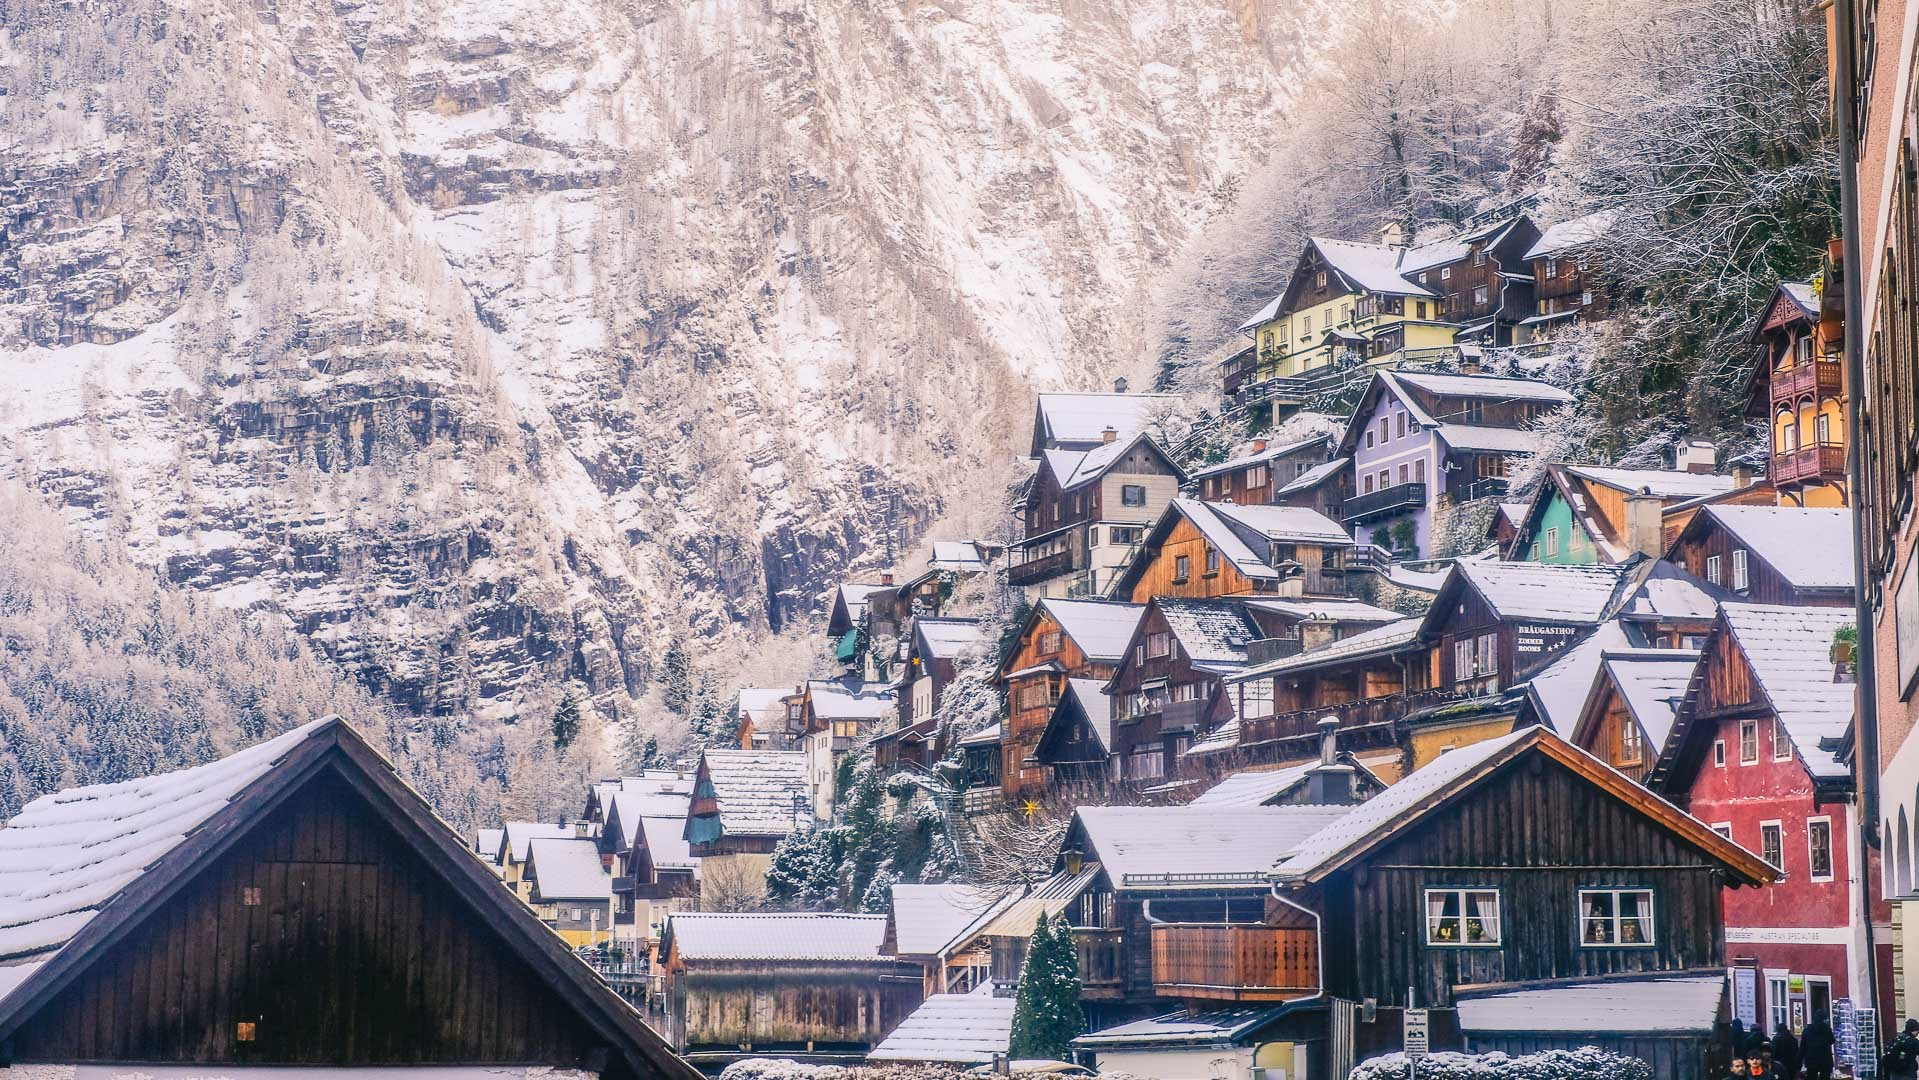 The Rooftops of the Wooden Houses in Hallstatt in Winter